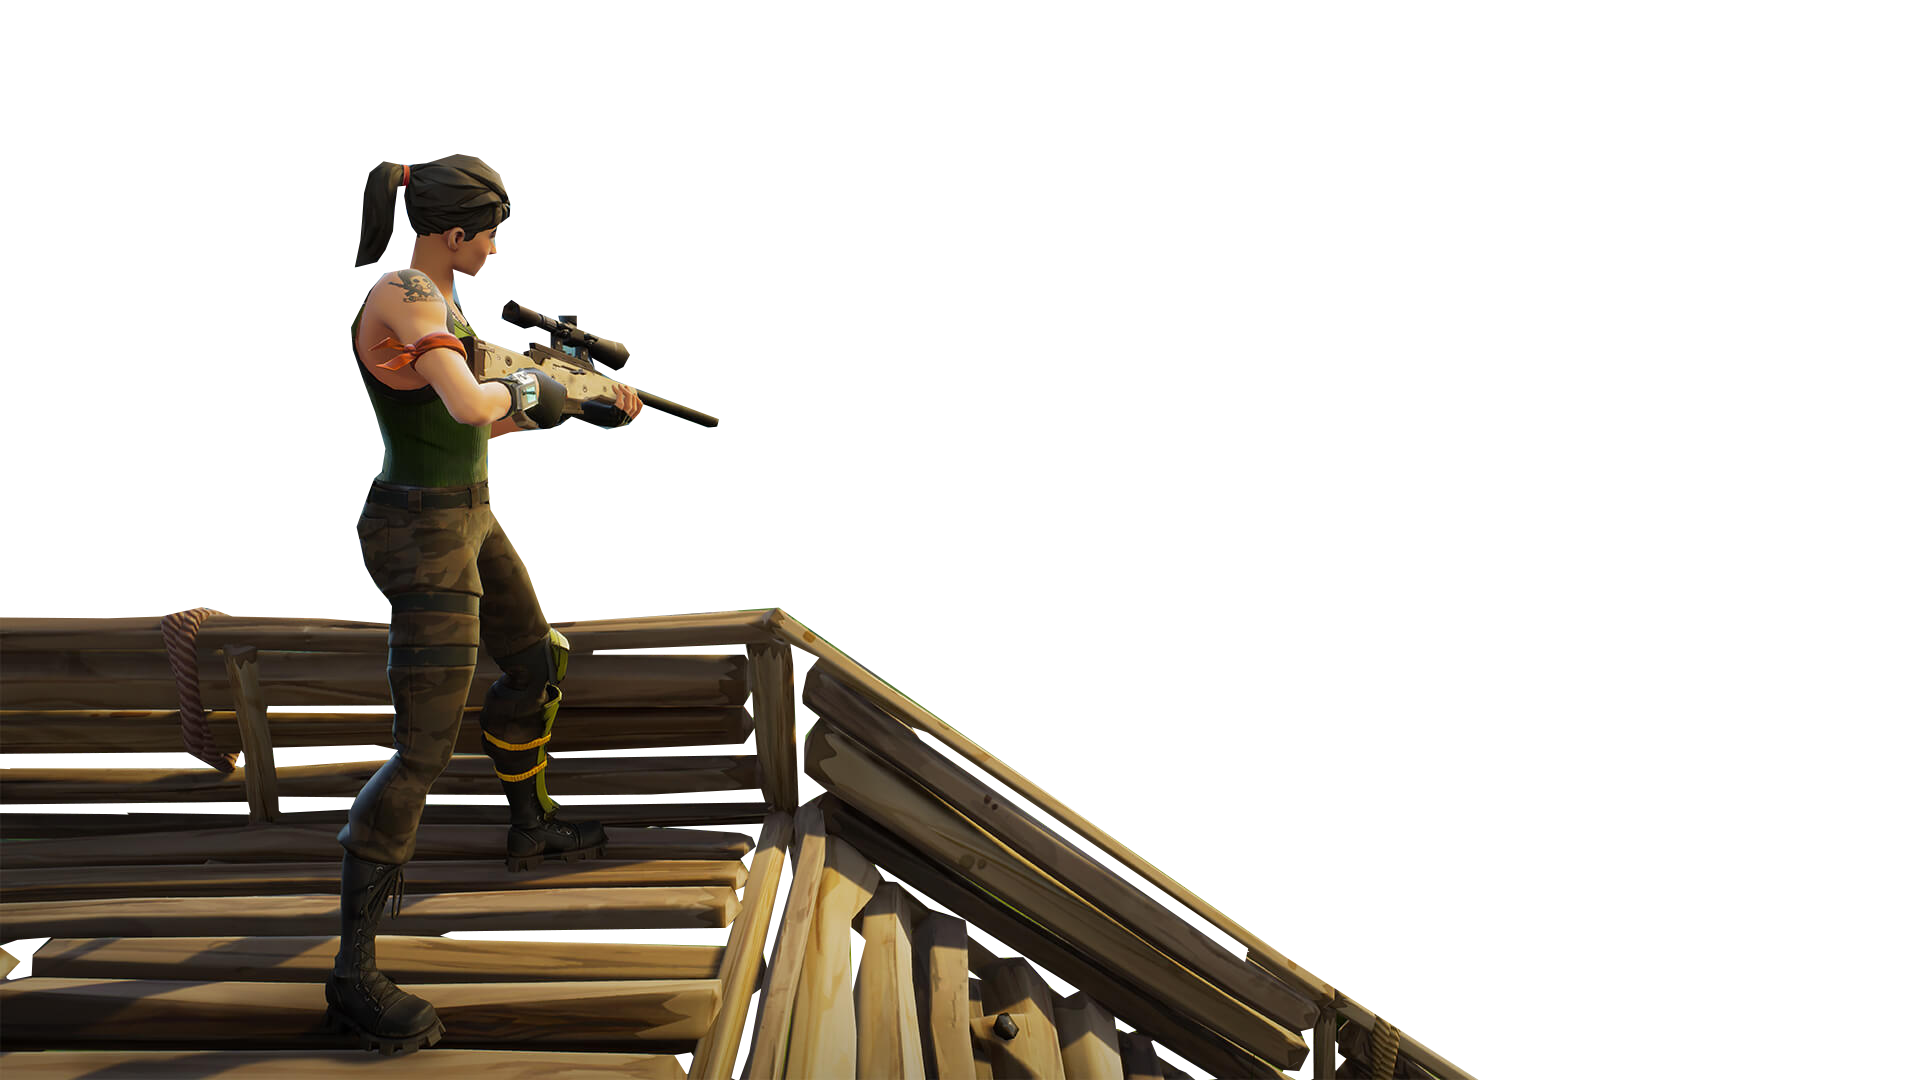 Fortnite sniper rifle png. On stairs thumbnail template